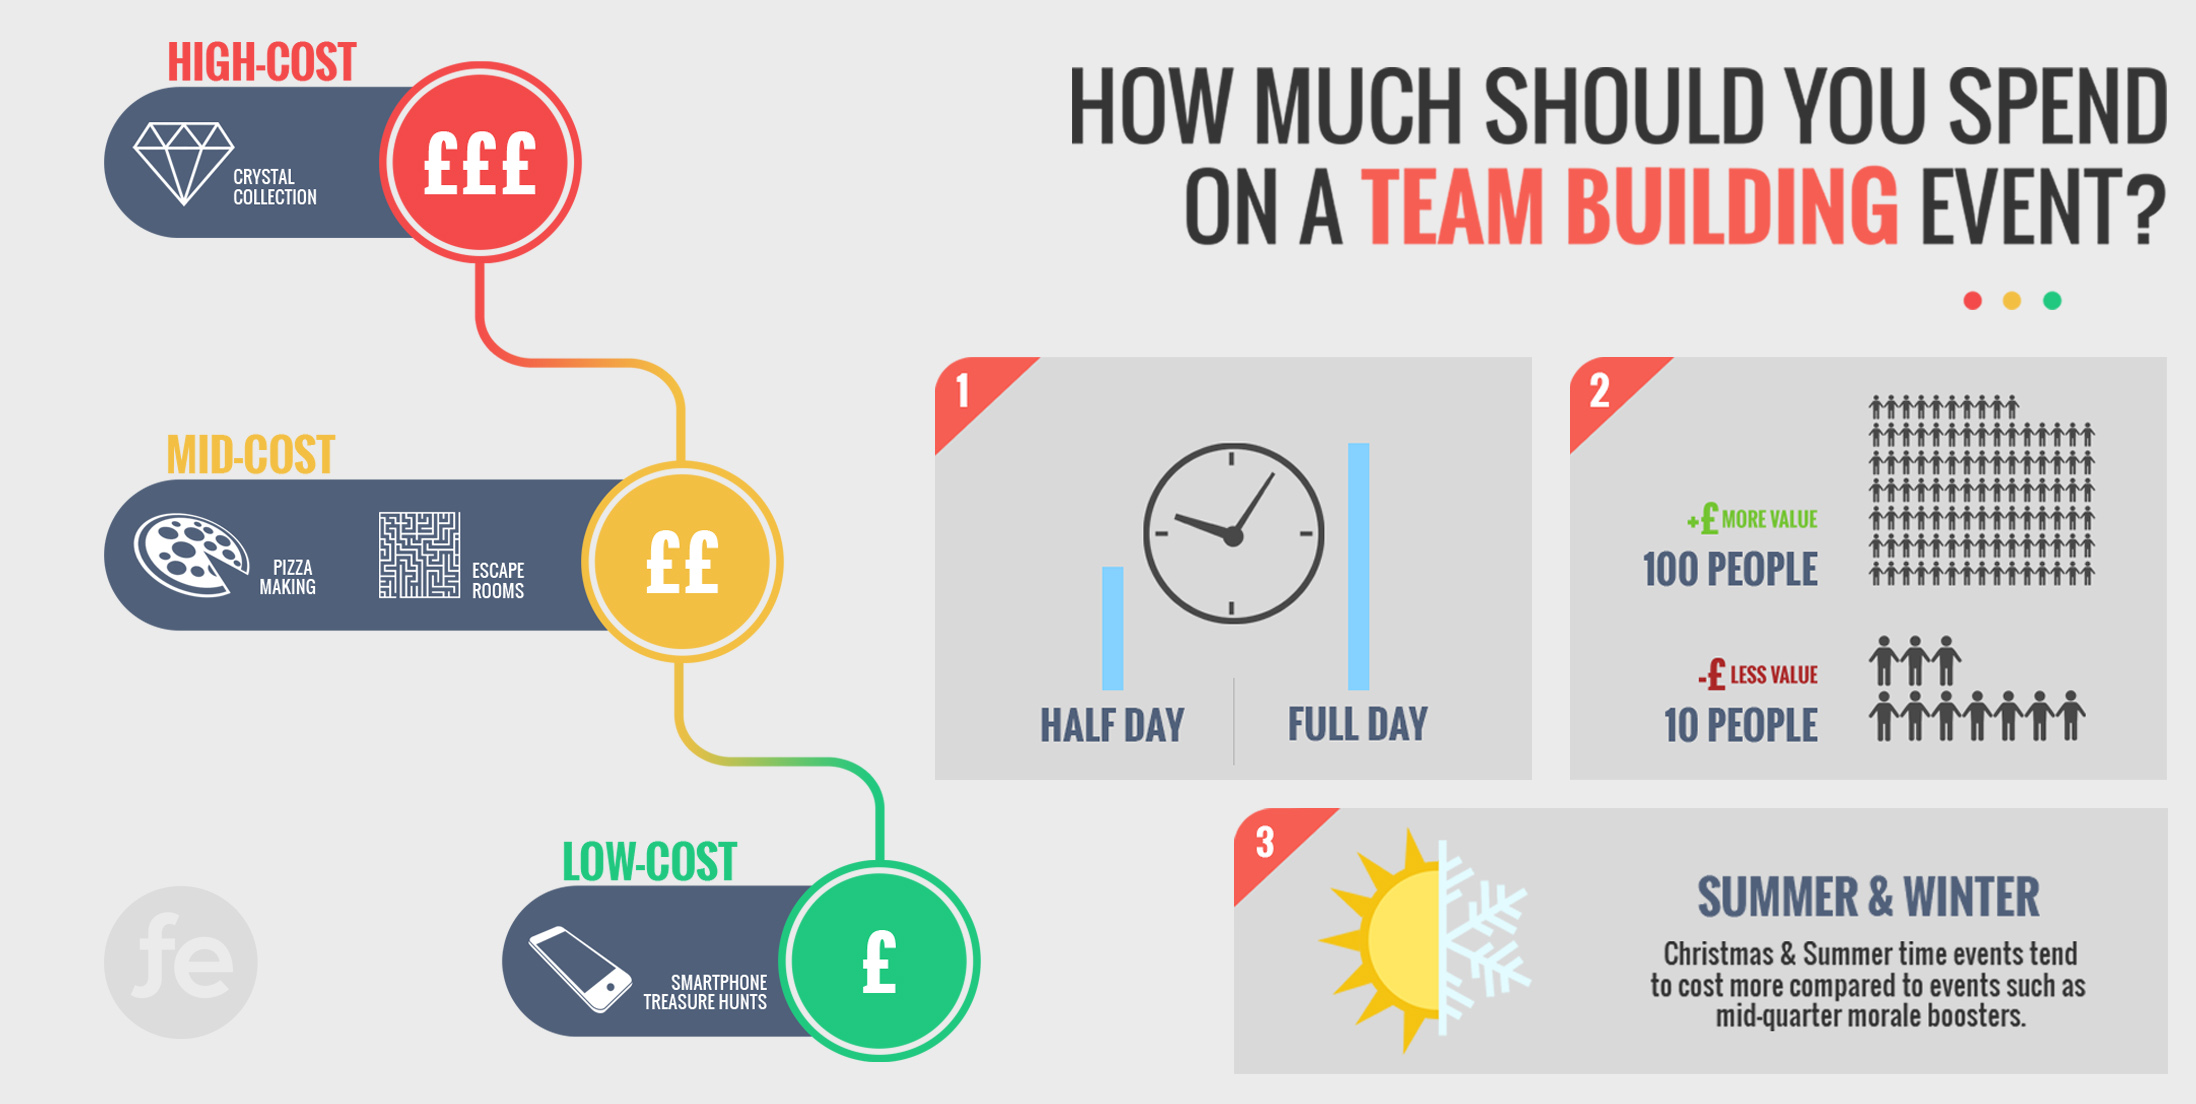 How Much Should You Spend on a Team Building Event?